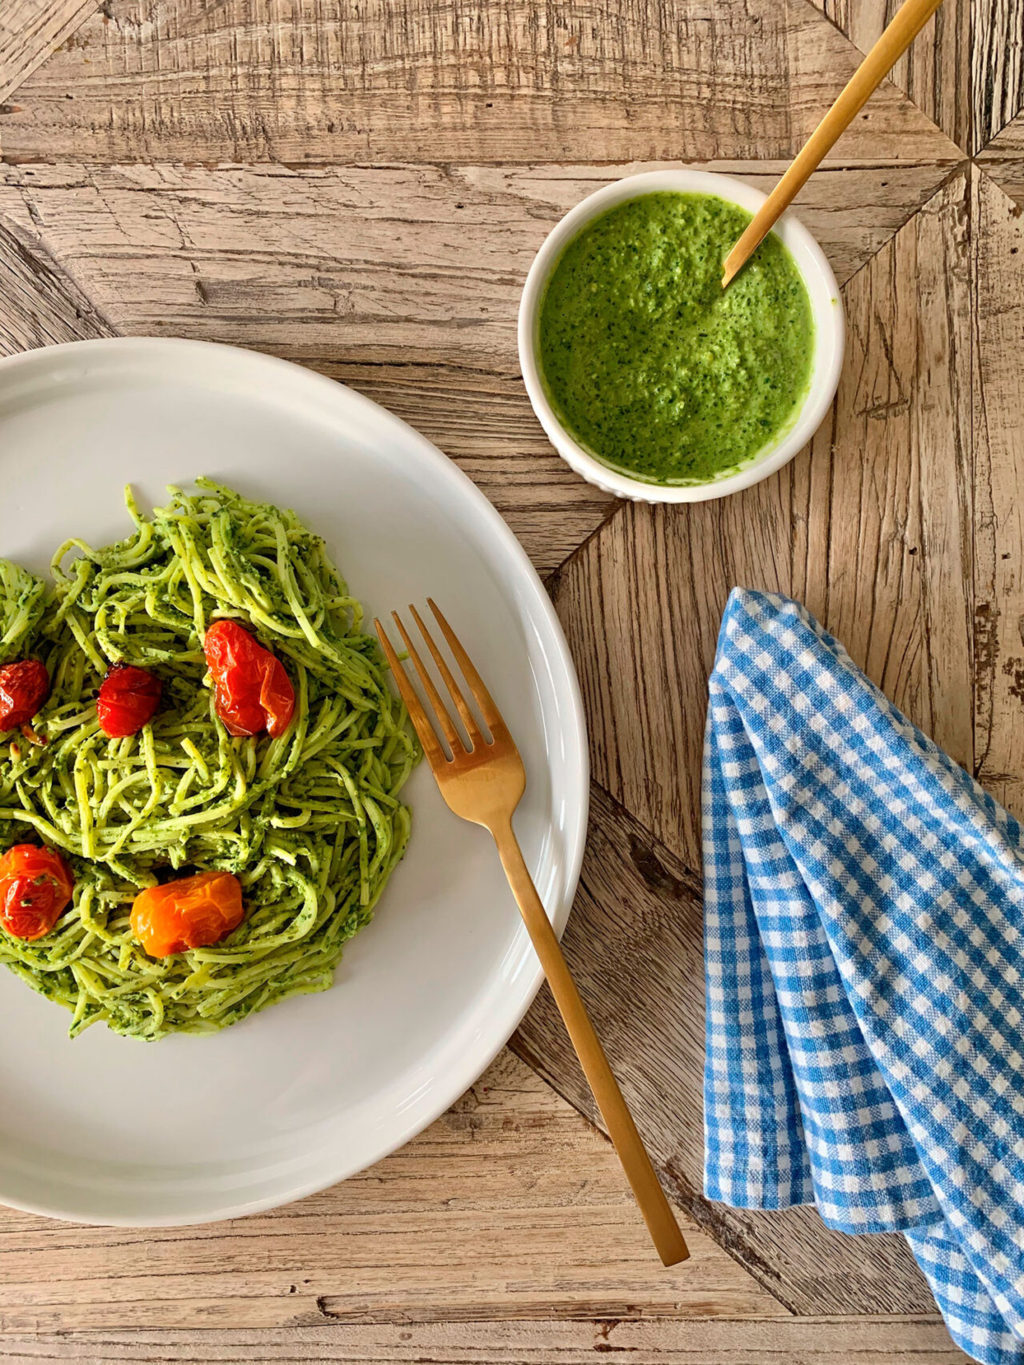 Vegan-Pesto-with-Palmini-Pasta-1280x1707.jpg